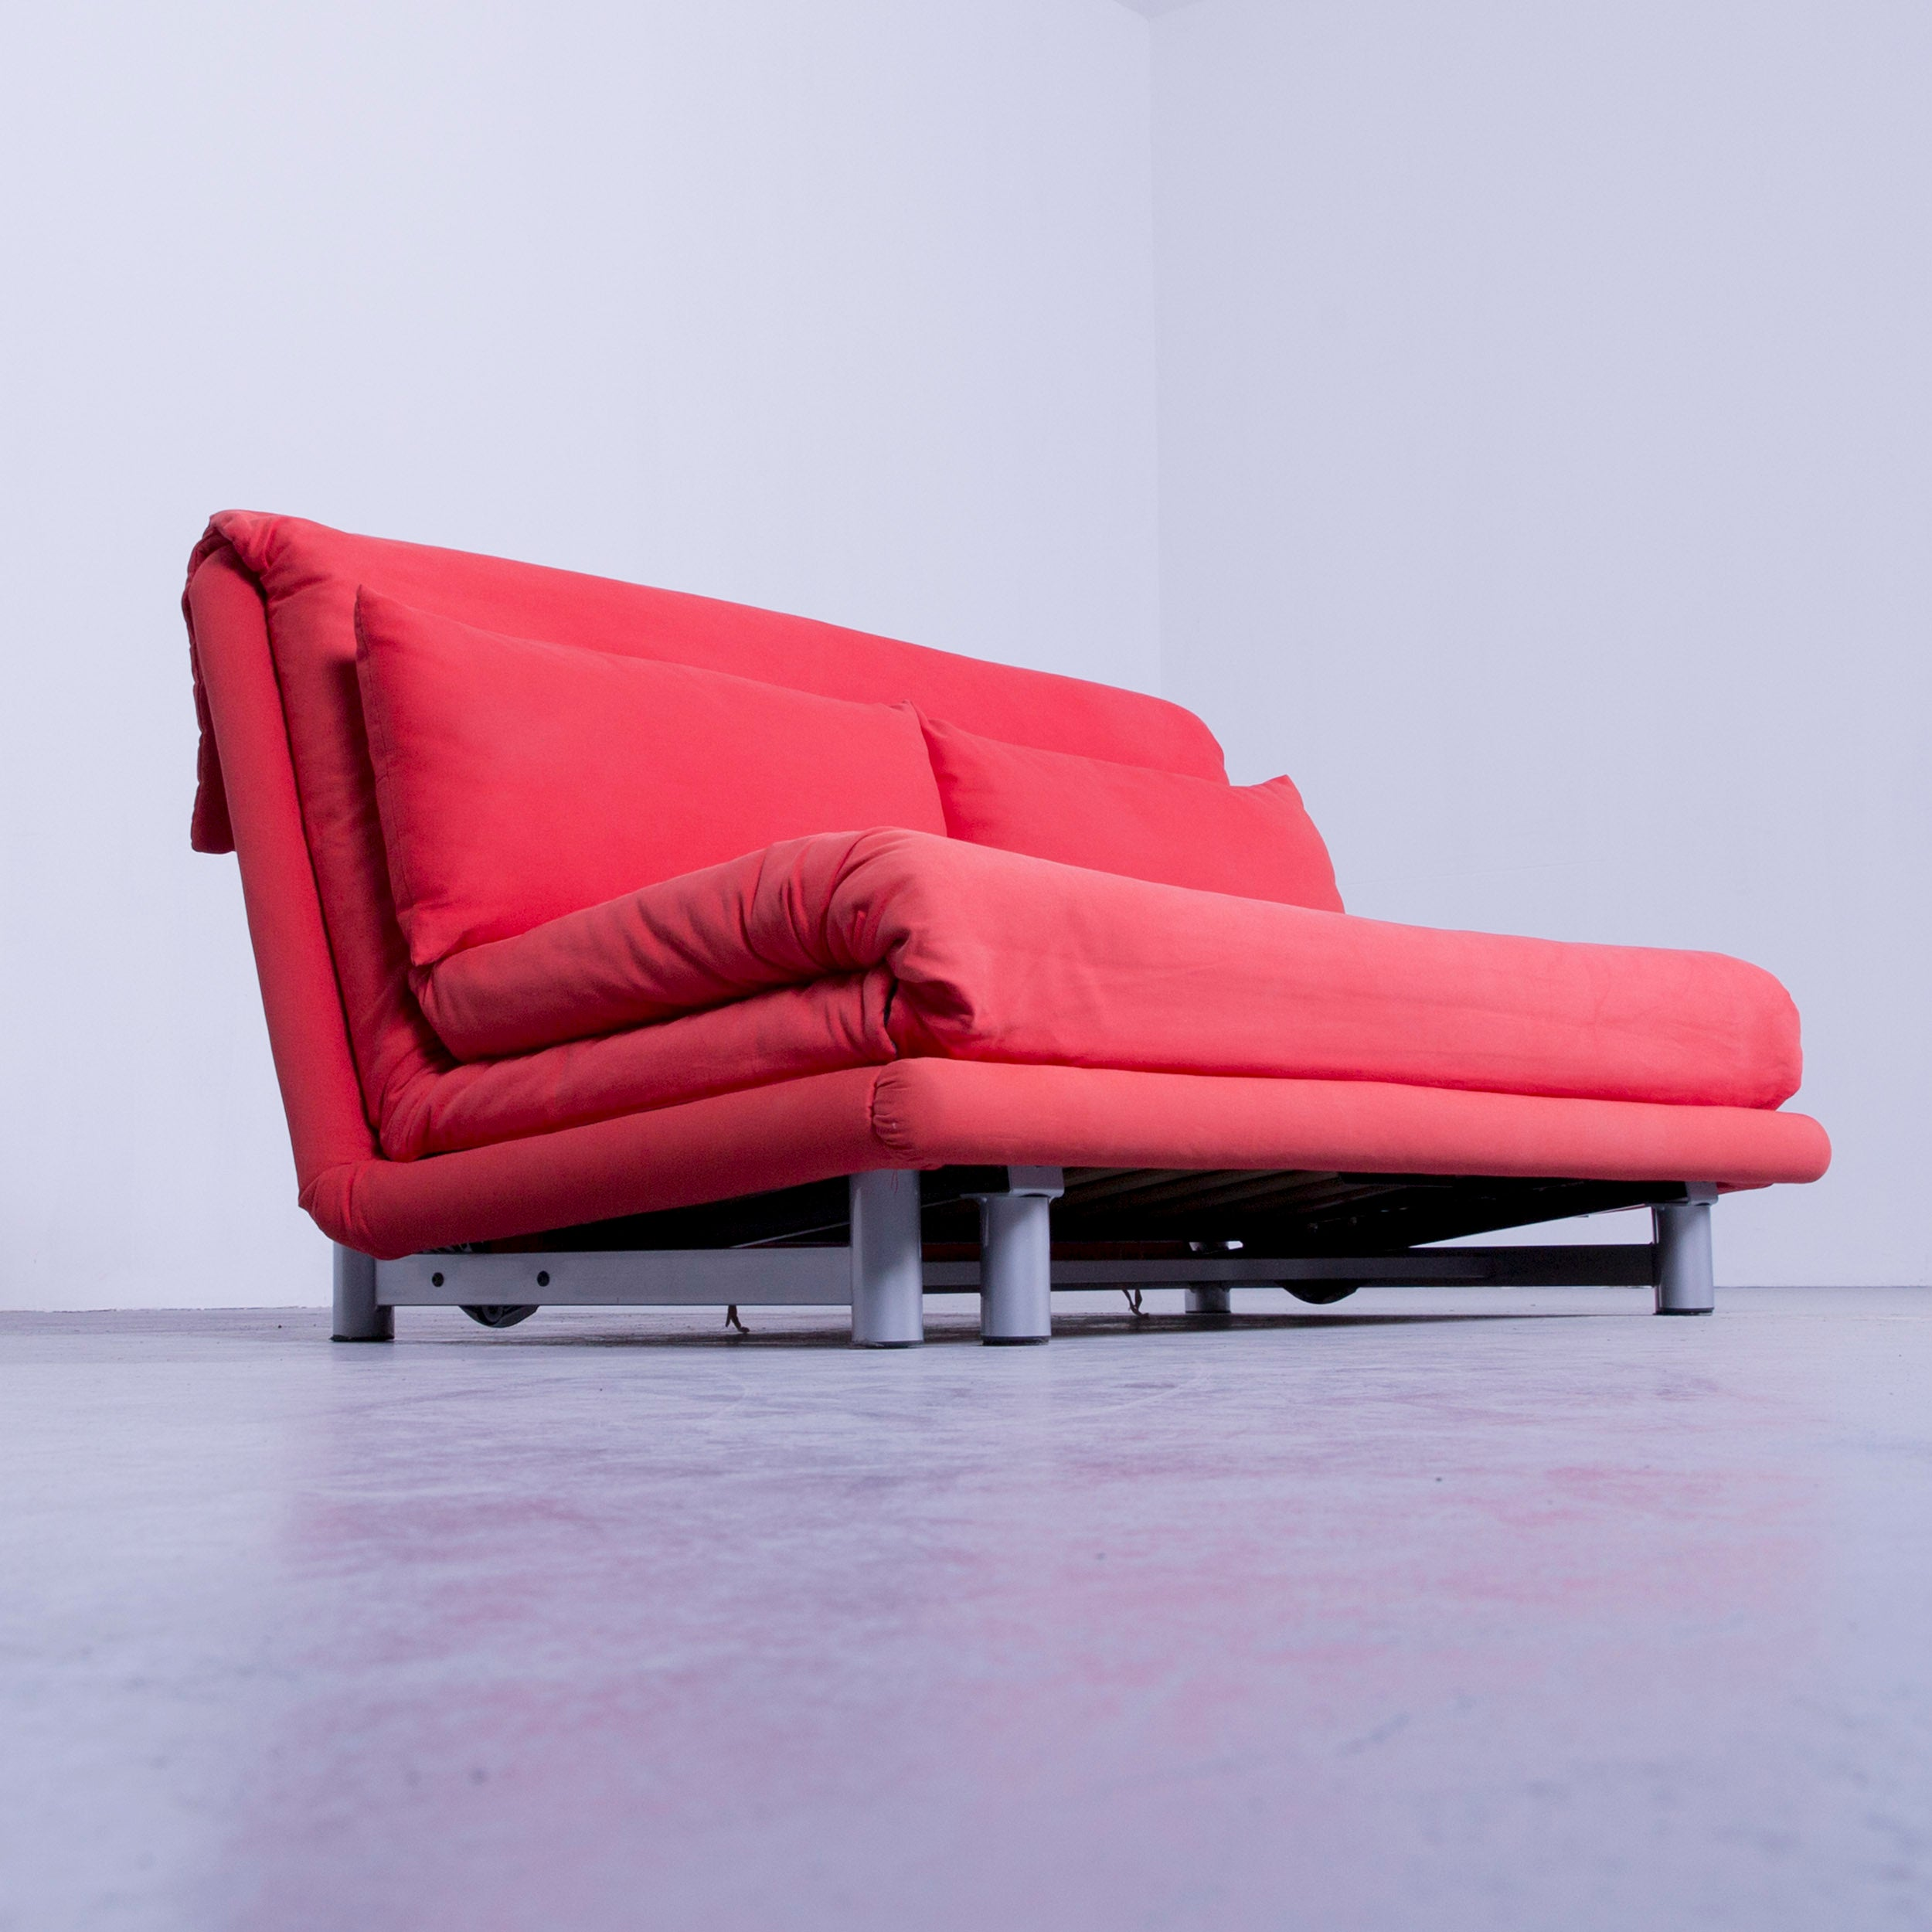 Sessel Ligne Roset Original Ligne Roset Multy Cloth Sleeping Couch Red Two Seat Function Modern